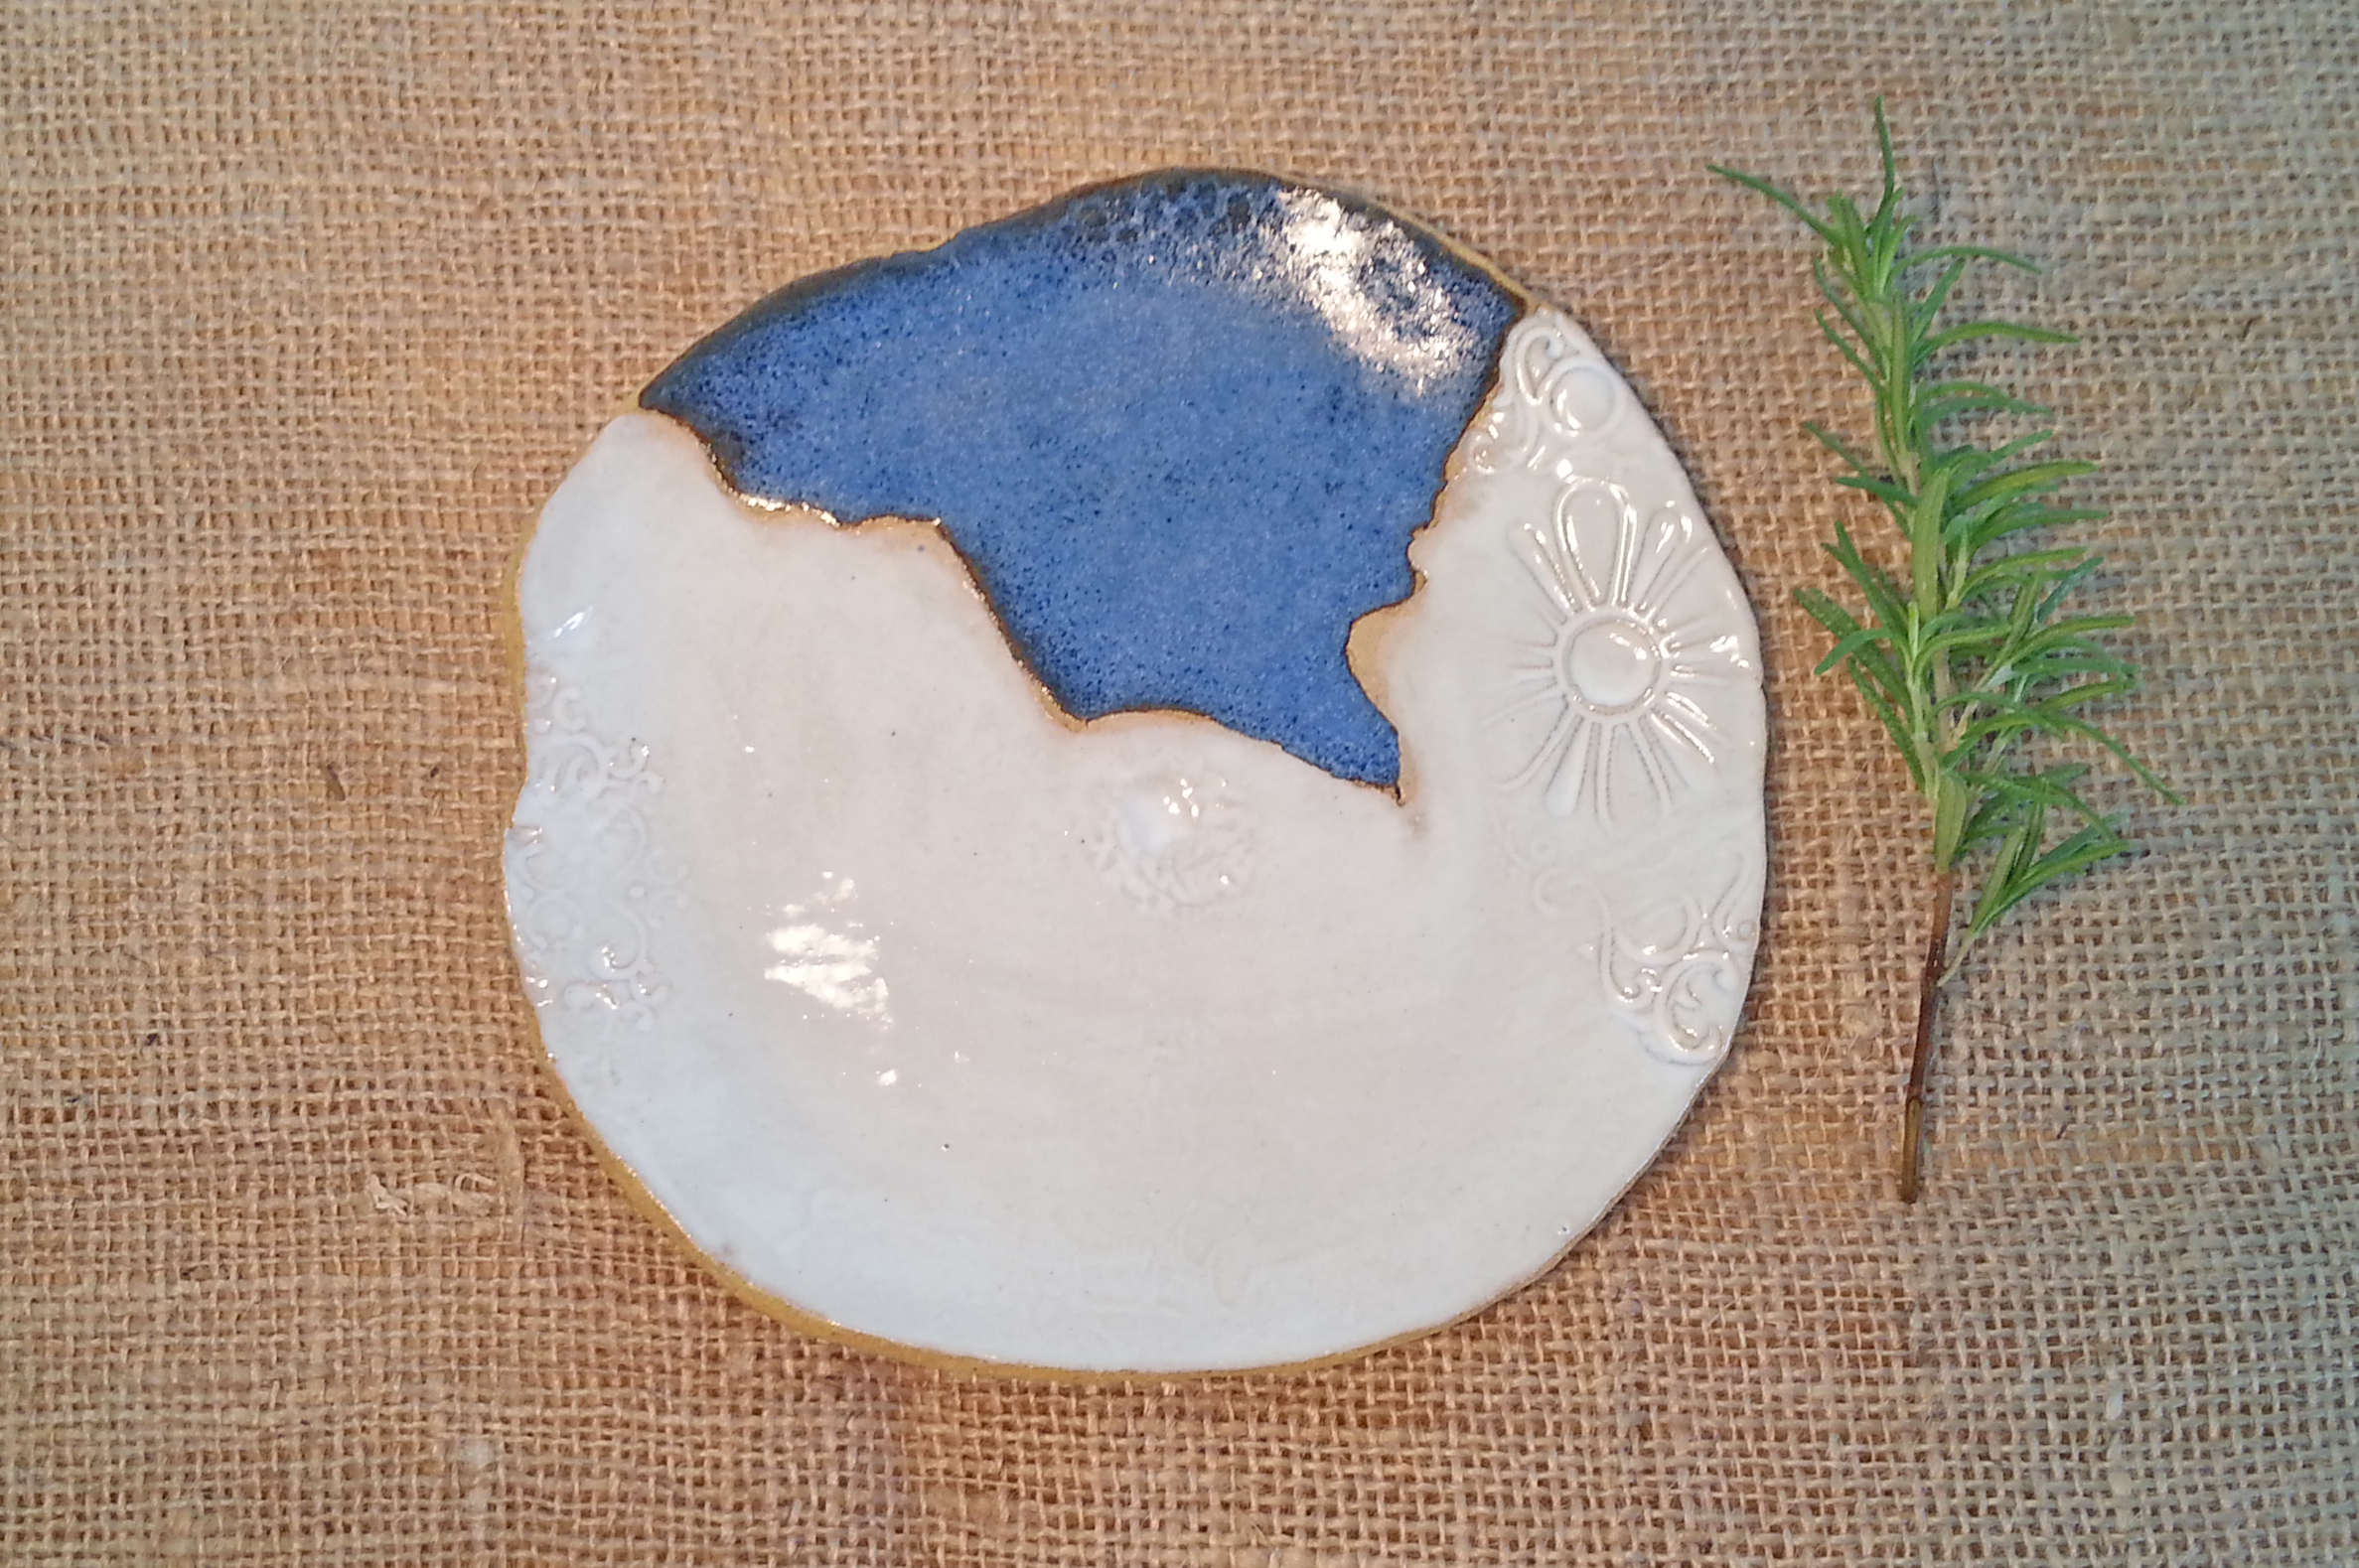 Plate- Ceramic, hand-built,  white and blue glaze